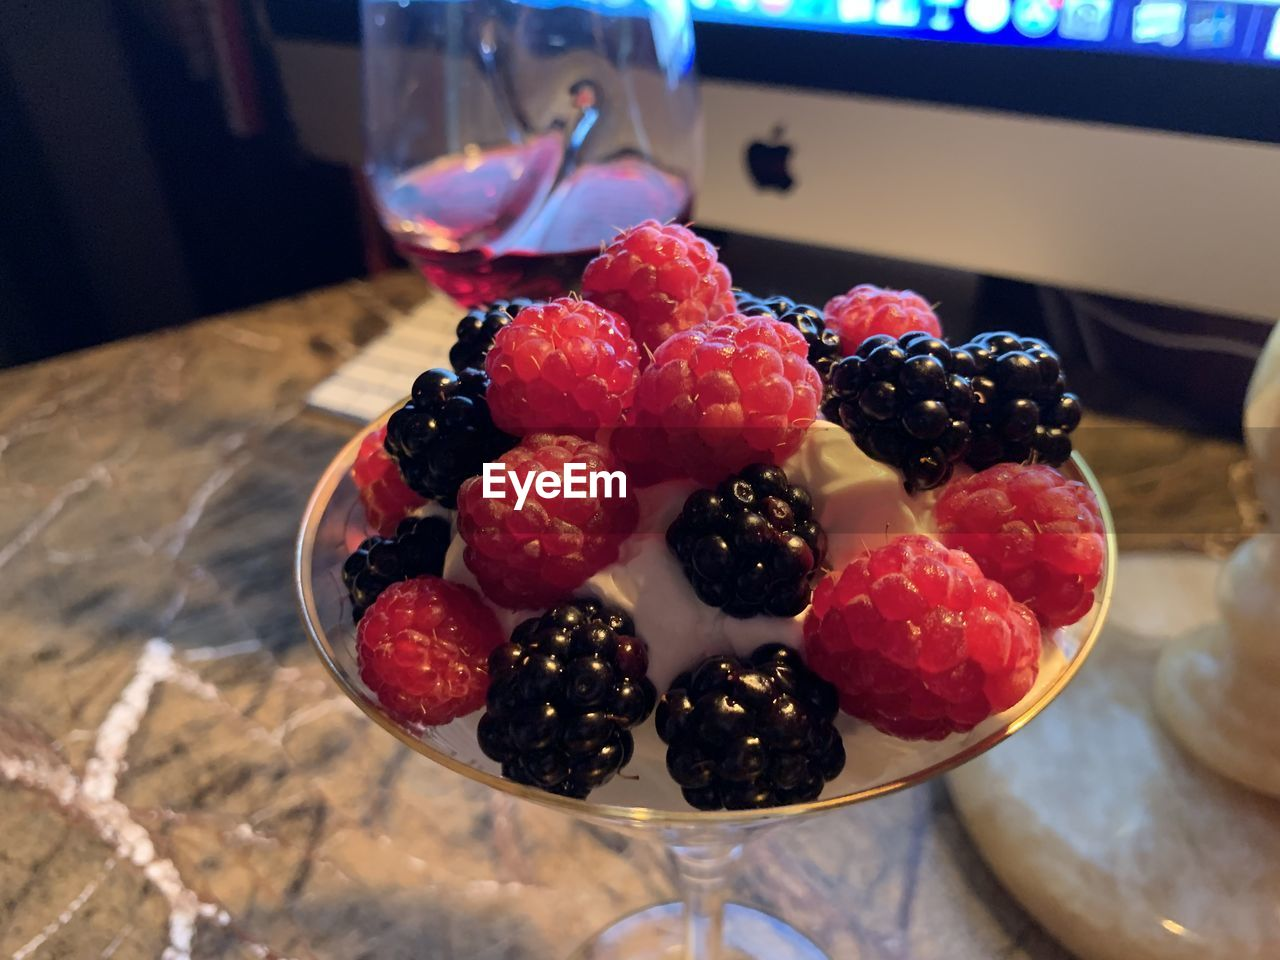 food, fruit, food and drink, healthy eating, freshness, berry fruit, table, indoors, wellbeing, bowl, still life, raspberry, close-up, focus on foreground, no people, blackberry - fruit, indulgence, high angle view, sweet food, ready-to-eat, temptation